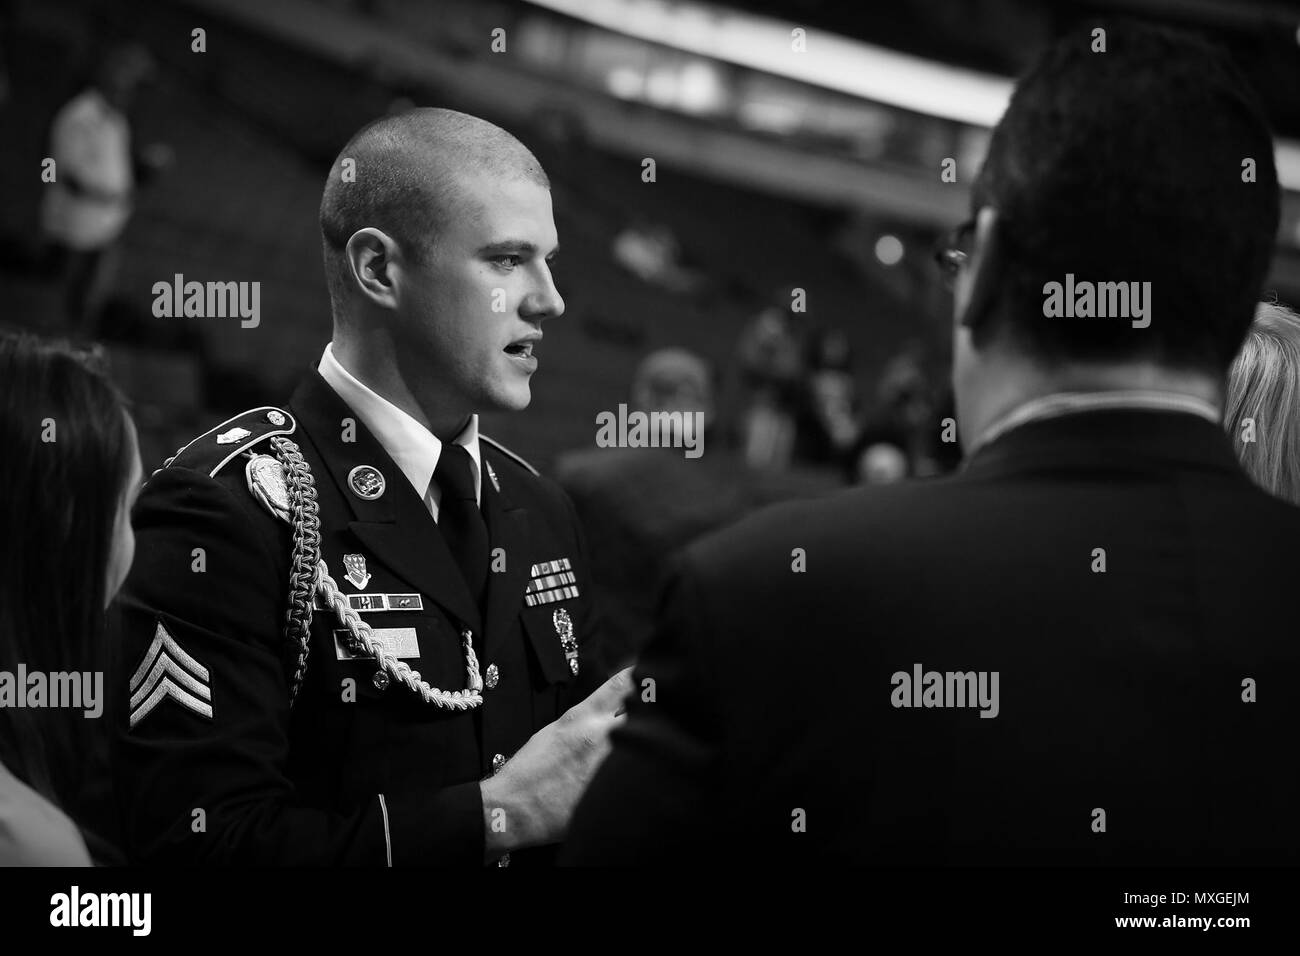 The 2015 U.S. Army Soldier of the Year Sgt. Jared Tansley, Illinois native, speaks with Chicago Bulls staff members before the Chicago Bulls vs. New York Knicks game at the United Center, Nov. 4, 2016. Tansley attended the game as part of a home-town recognition here in Illinois. During his visit, Tansley spoke at numerous locations throughout Chicago and Illinois to include his former high school in Sycamore, Illinois.   (U.S. Army photo by Anthony L. Taylor/Released) Stock Photo